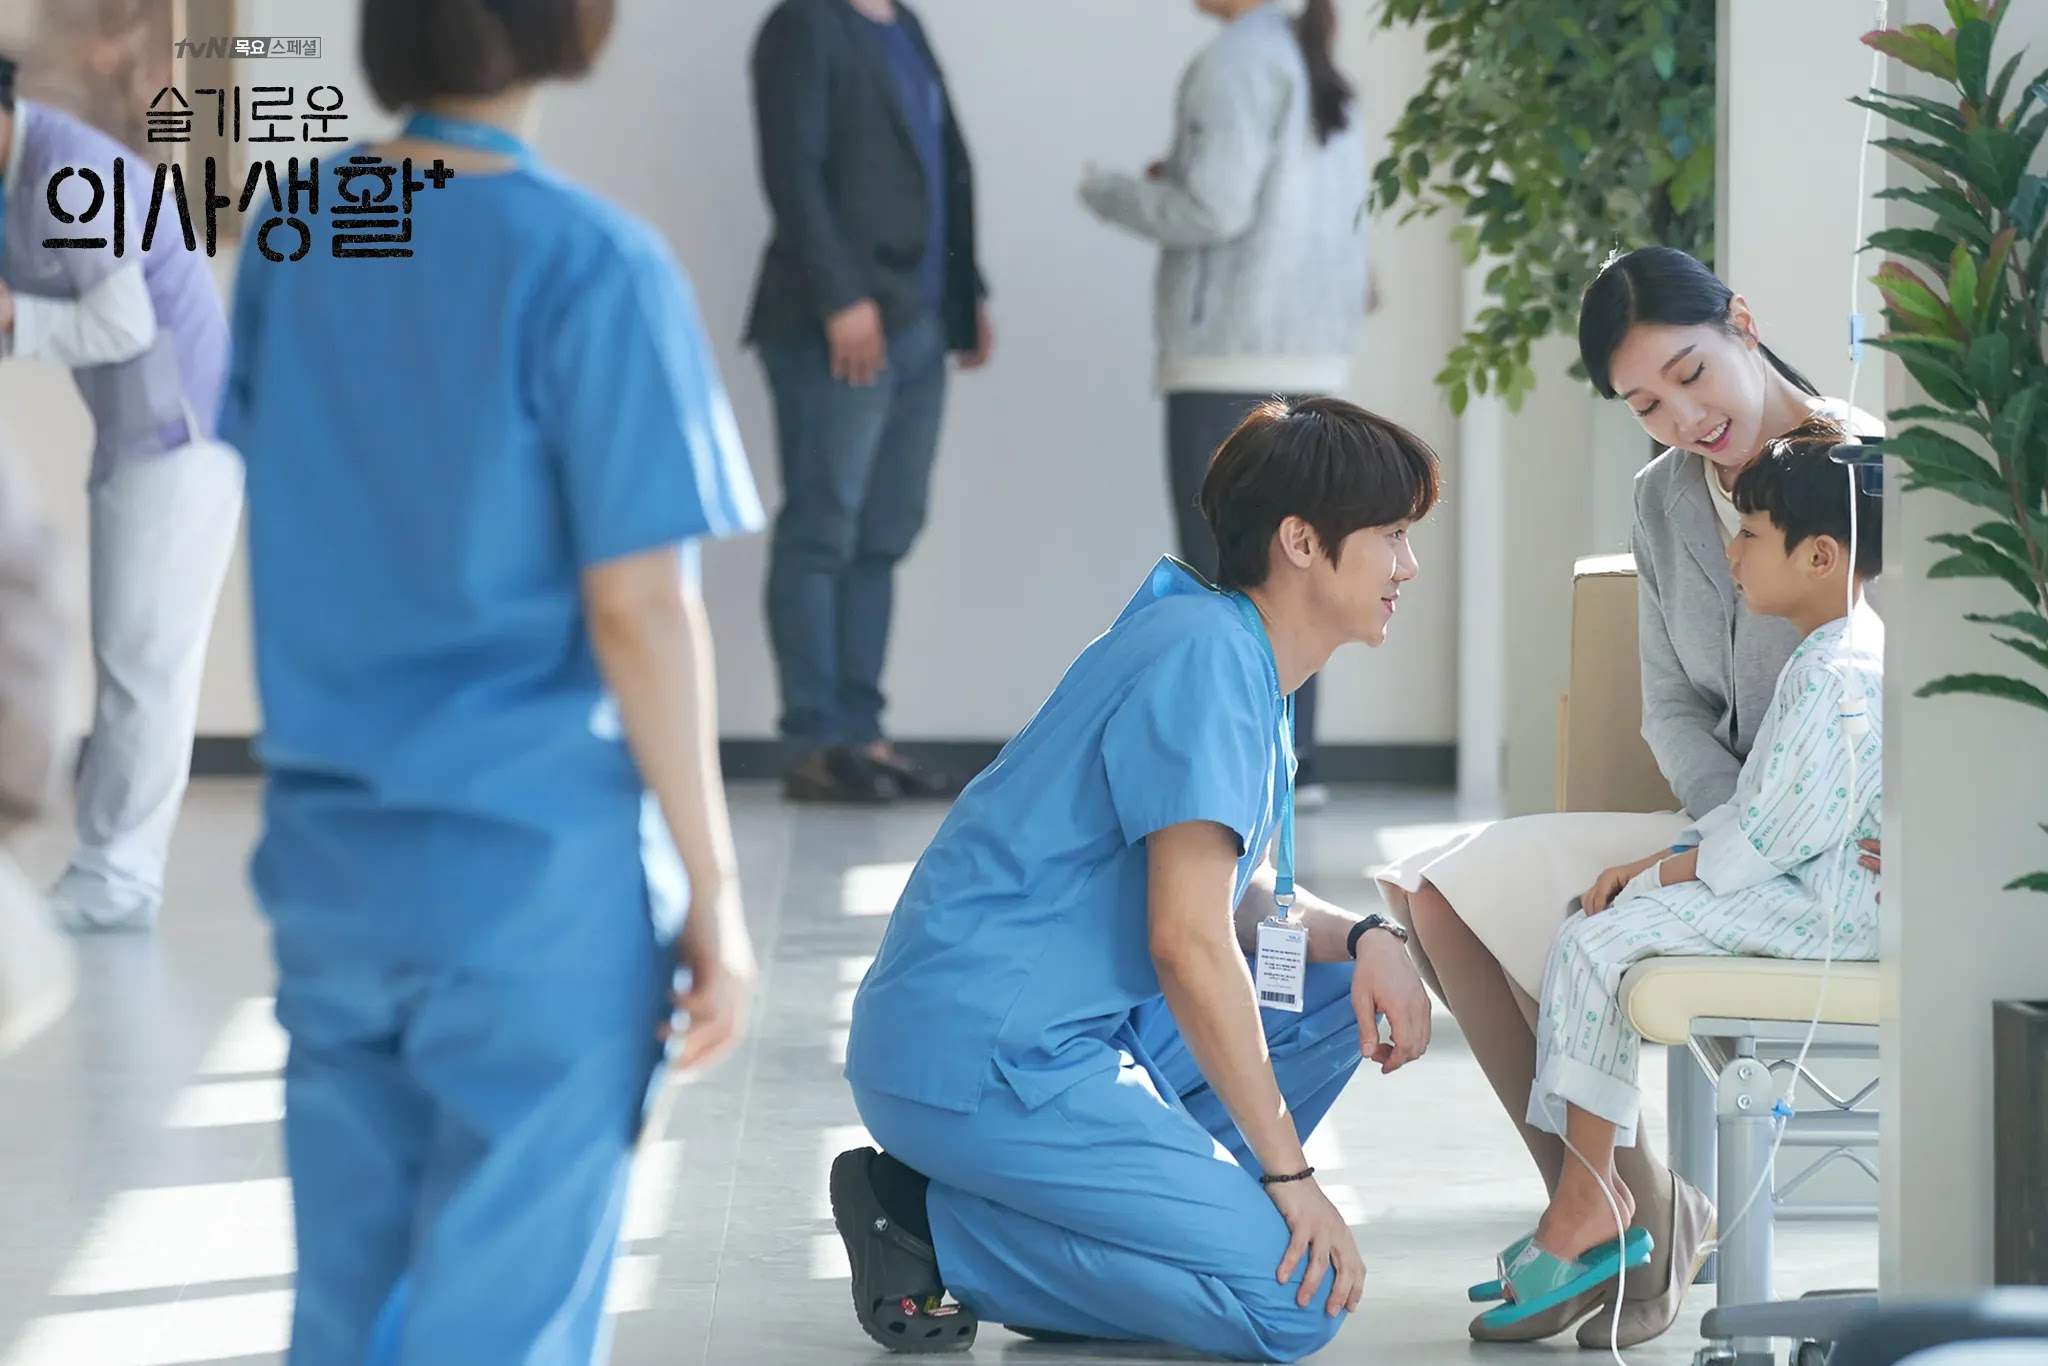 Hospital Playlist - Jeong-won with a patient